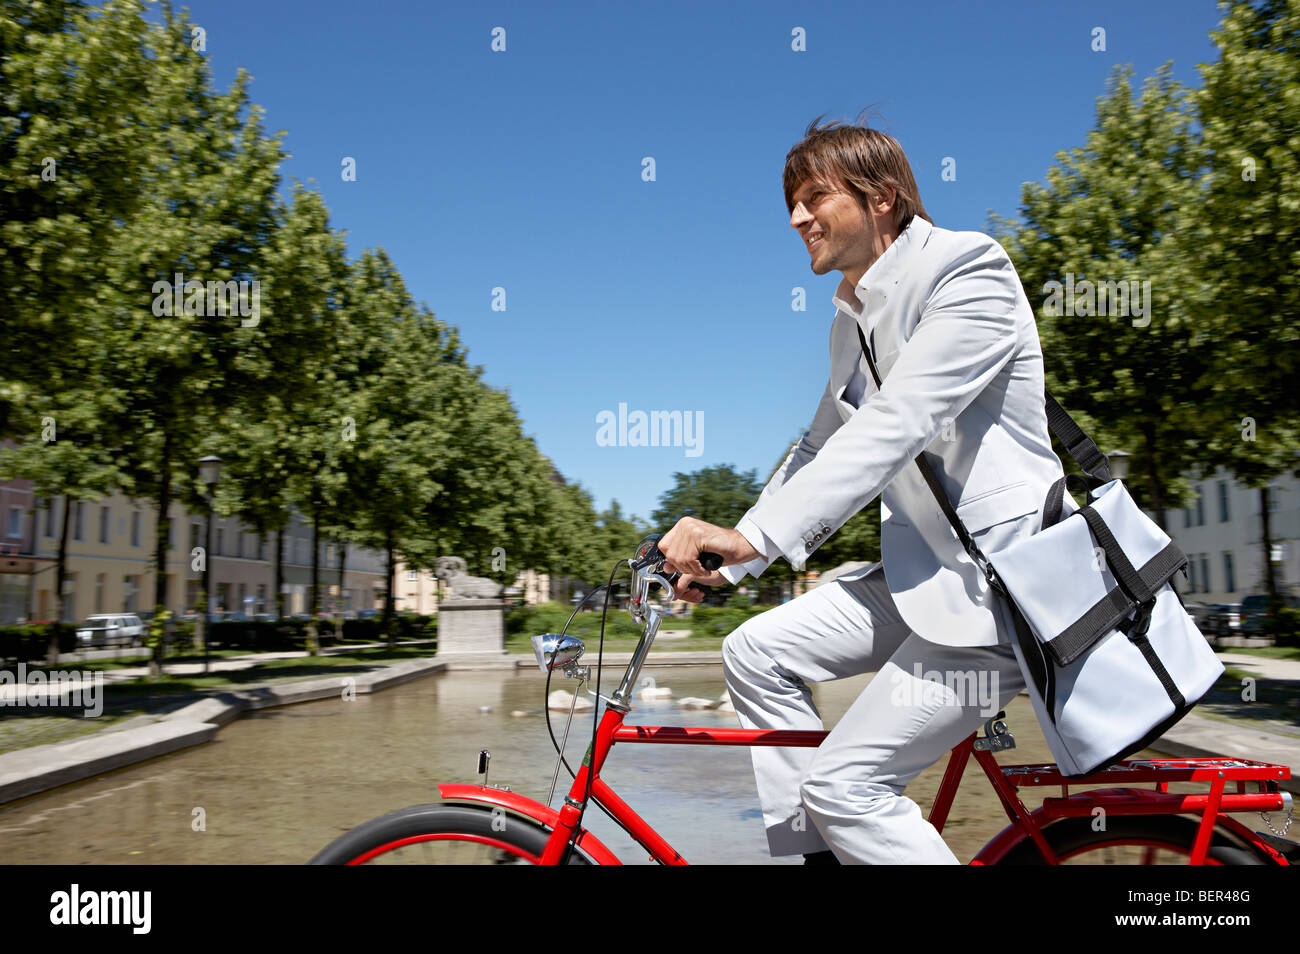 Man bicycling with bag across the city - Stock Image